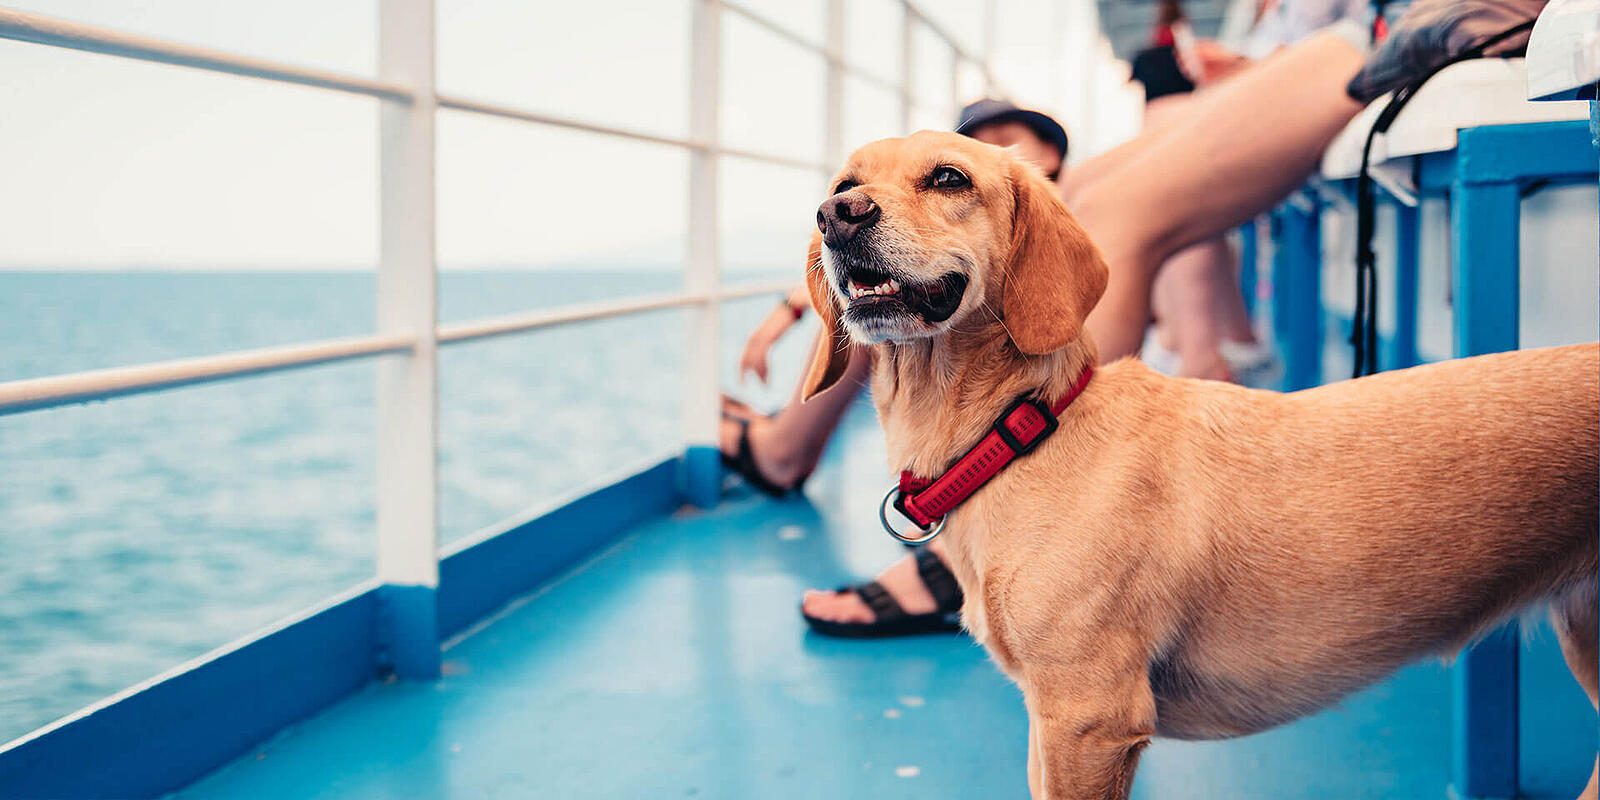 Dog on Board, or how cruise and ferry lines can add value with pre-booked services